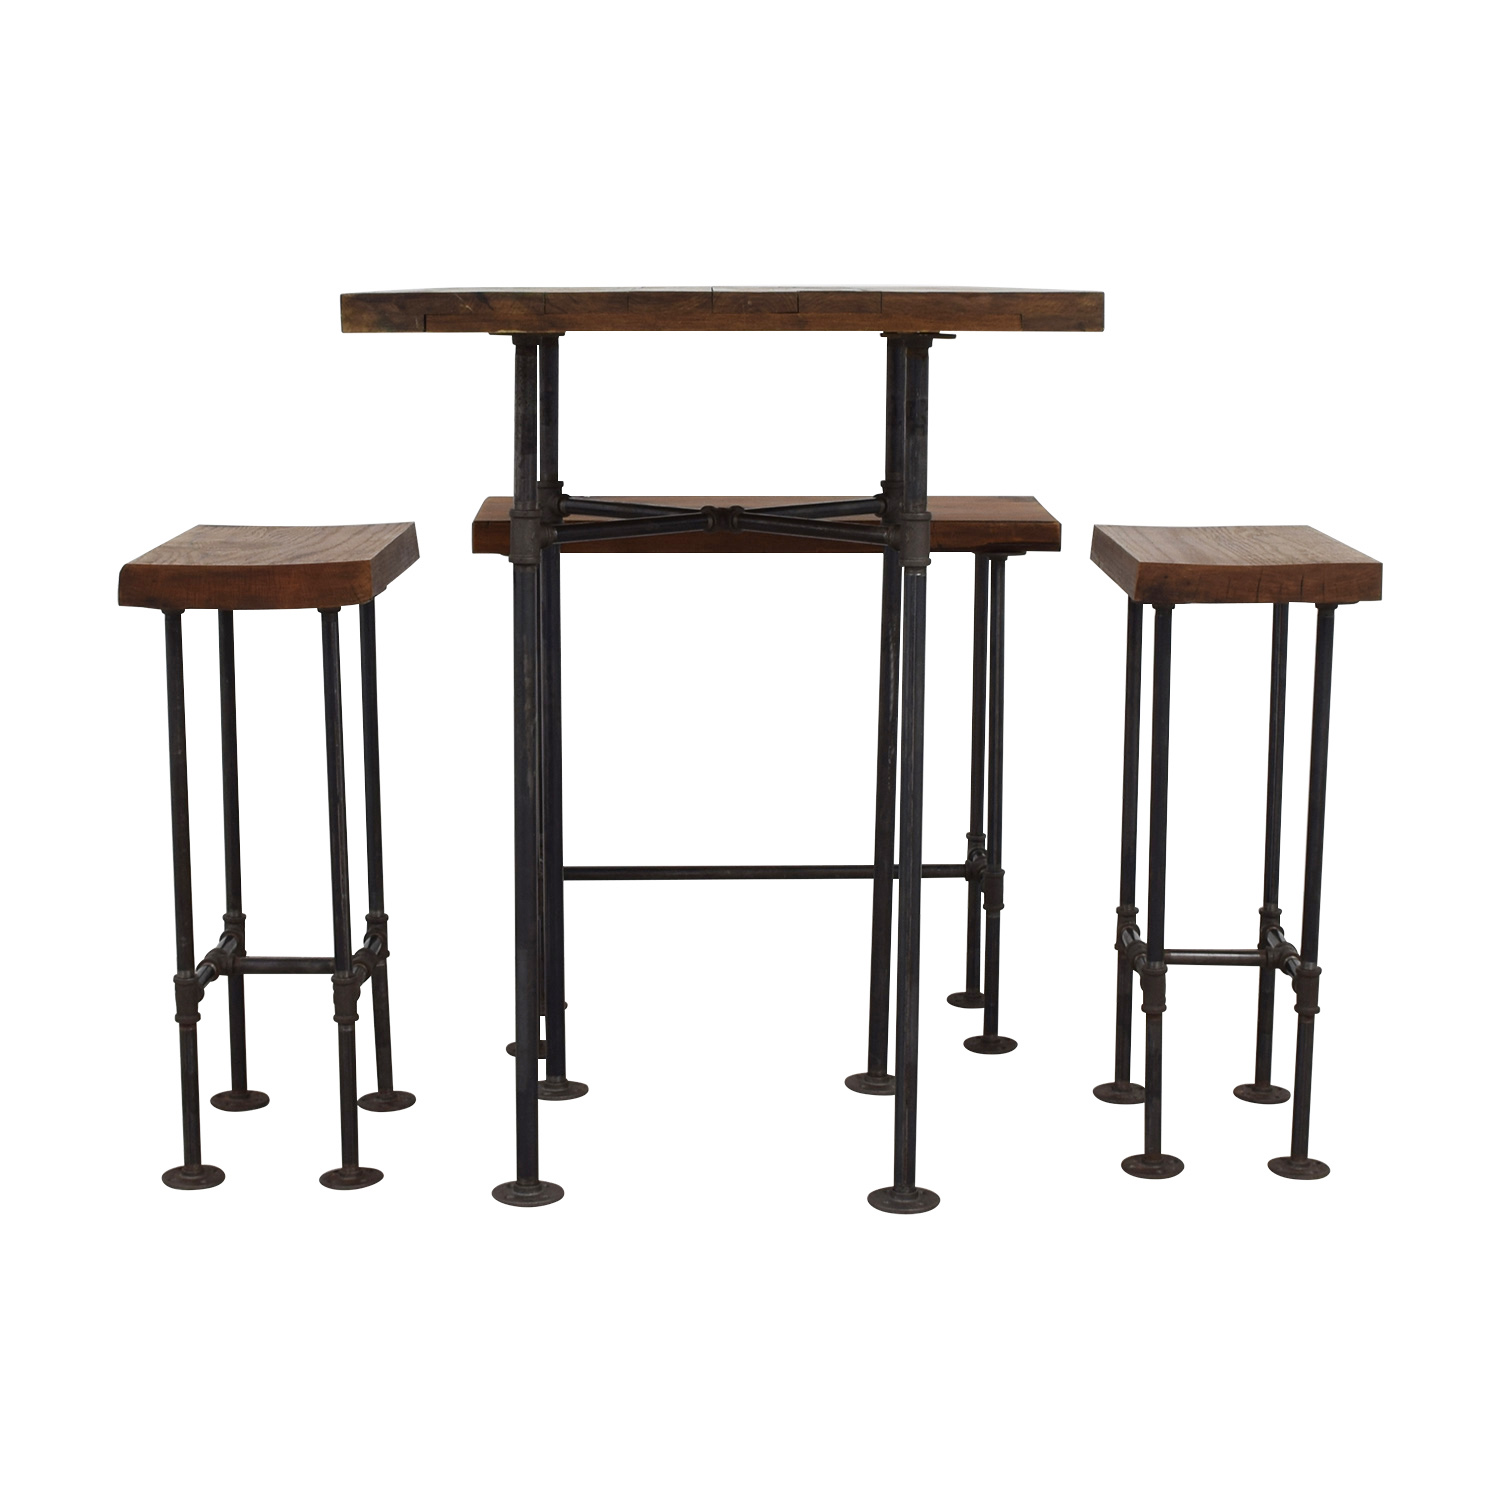 shop A Little of India A Little of India Industrial Reclaimed Wood Counter Table and Stools online